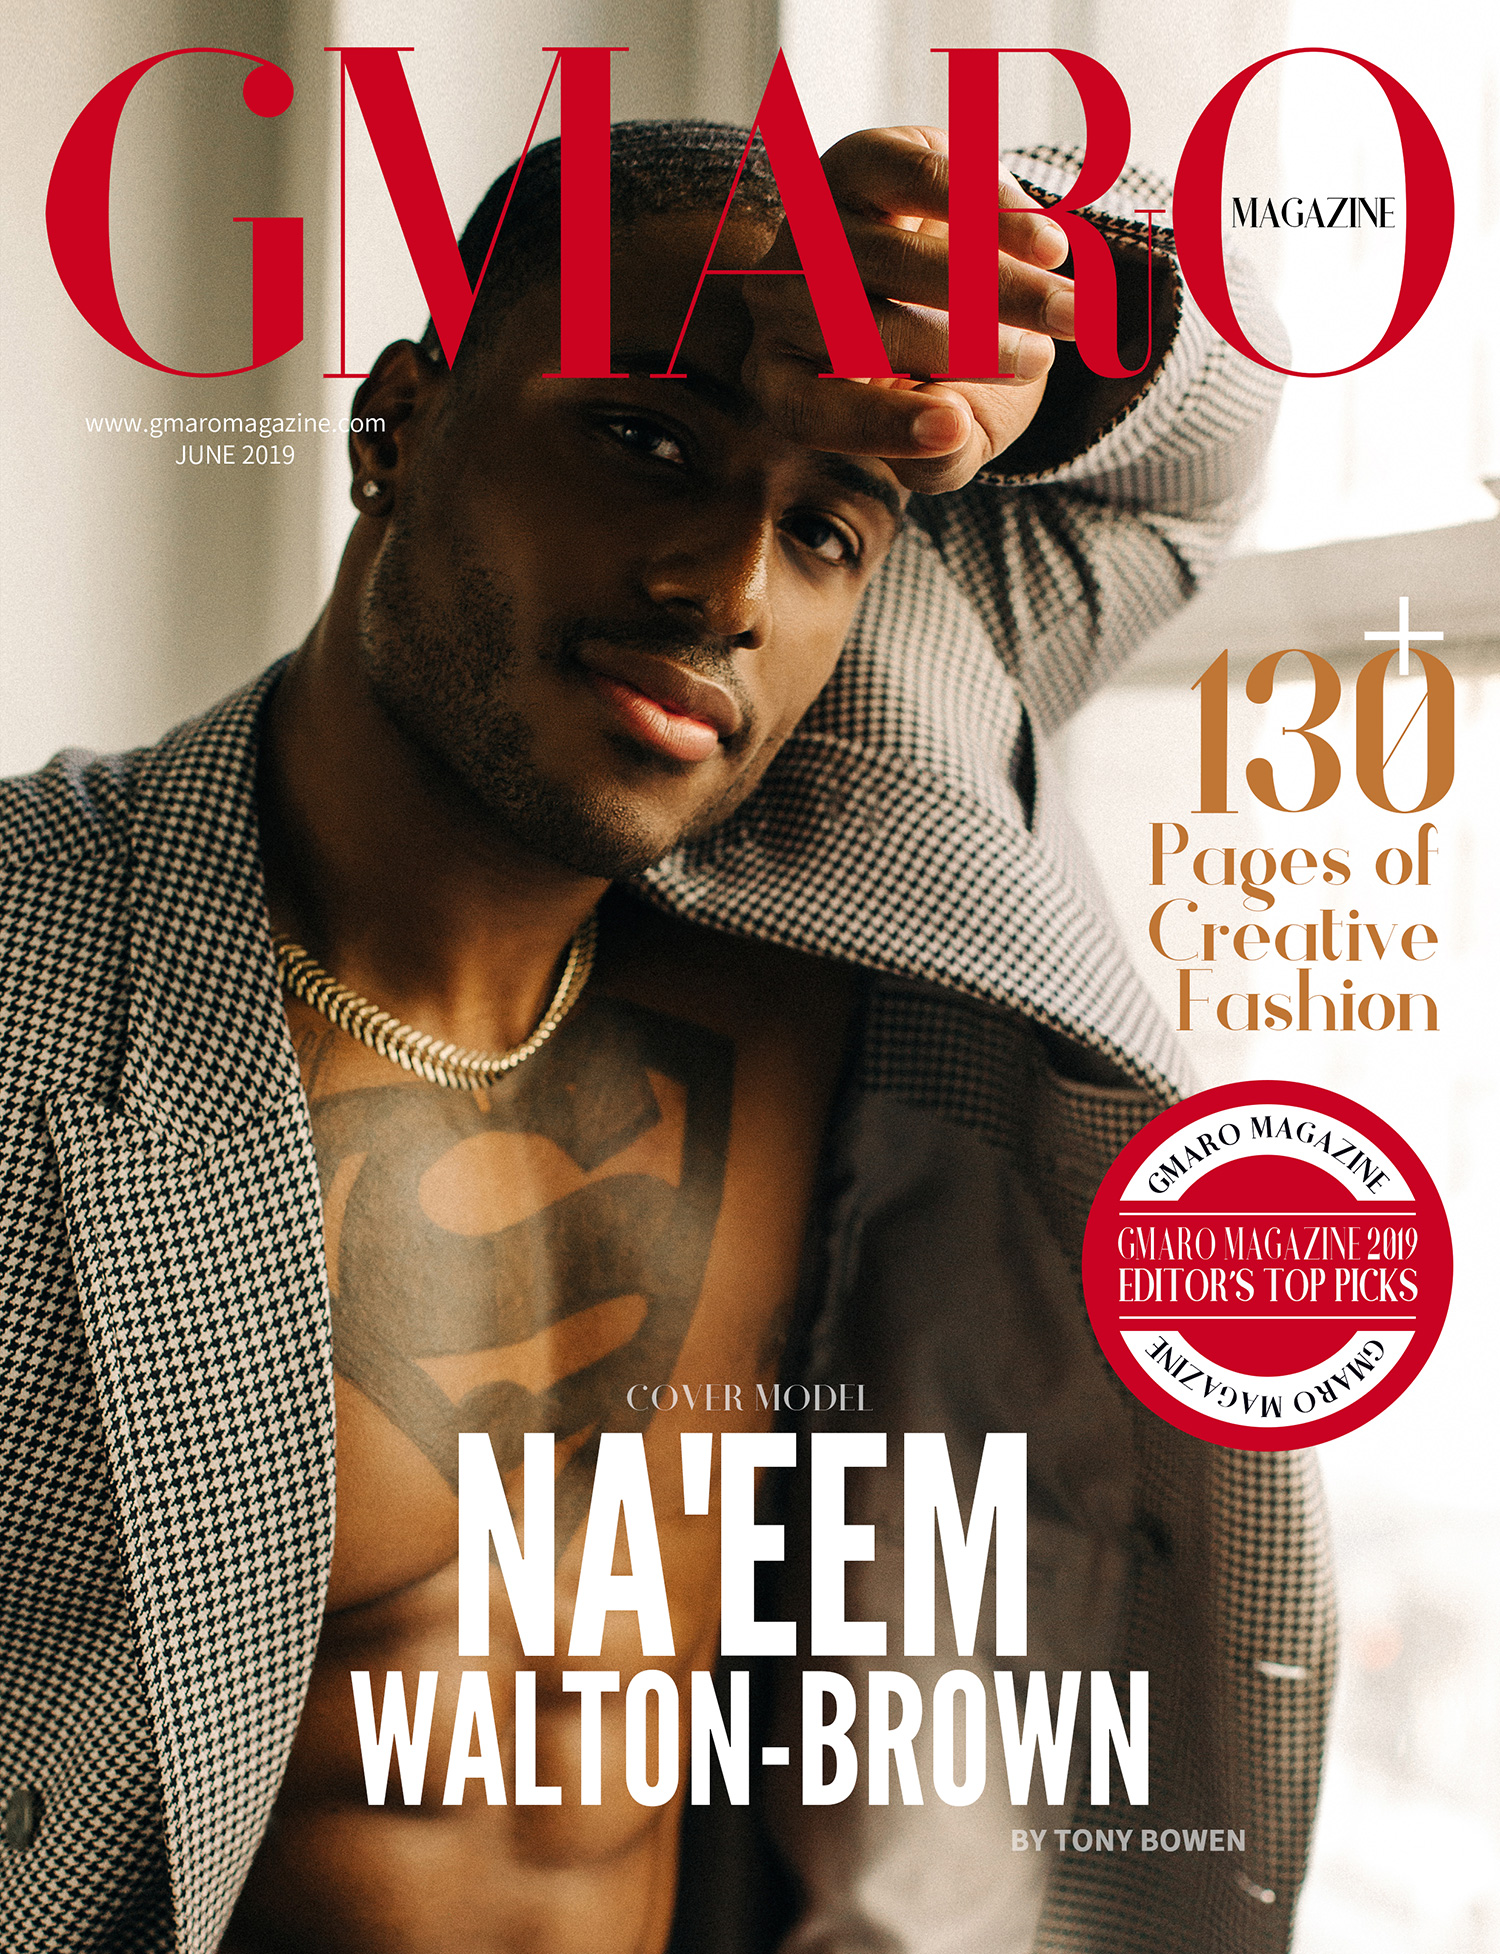 GMARO Magazine #05 JUNE 2019